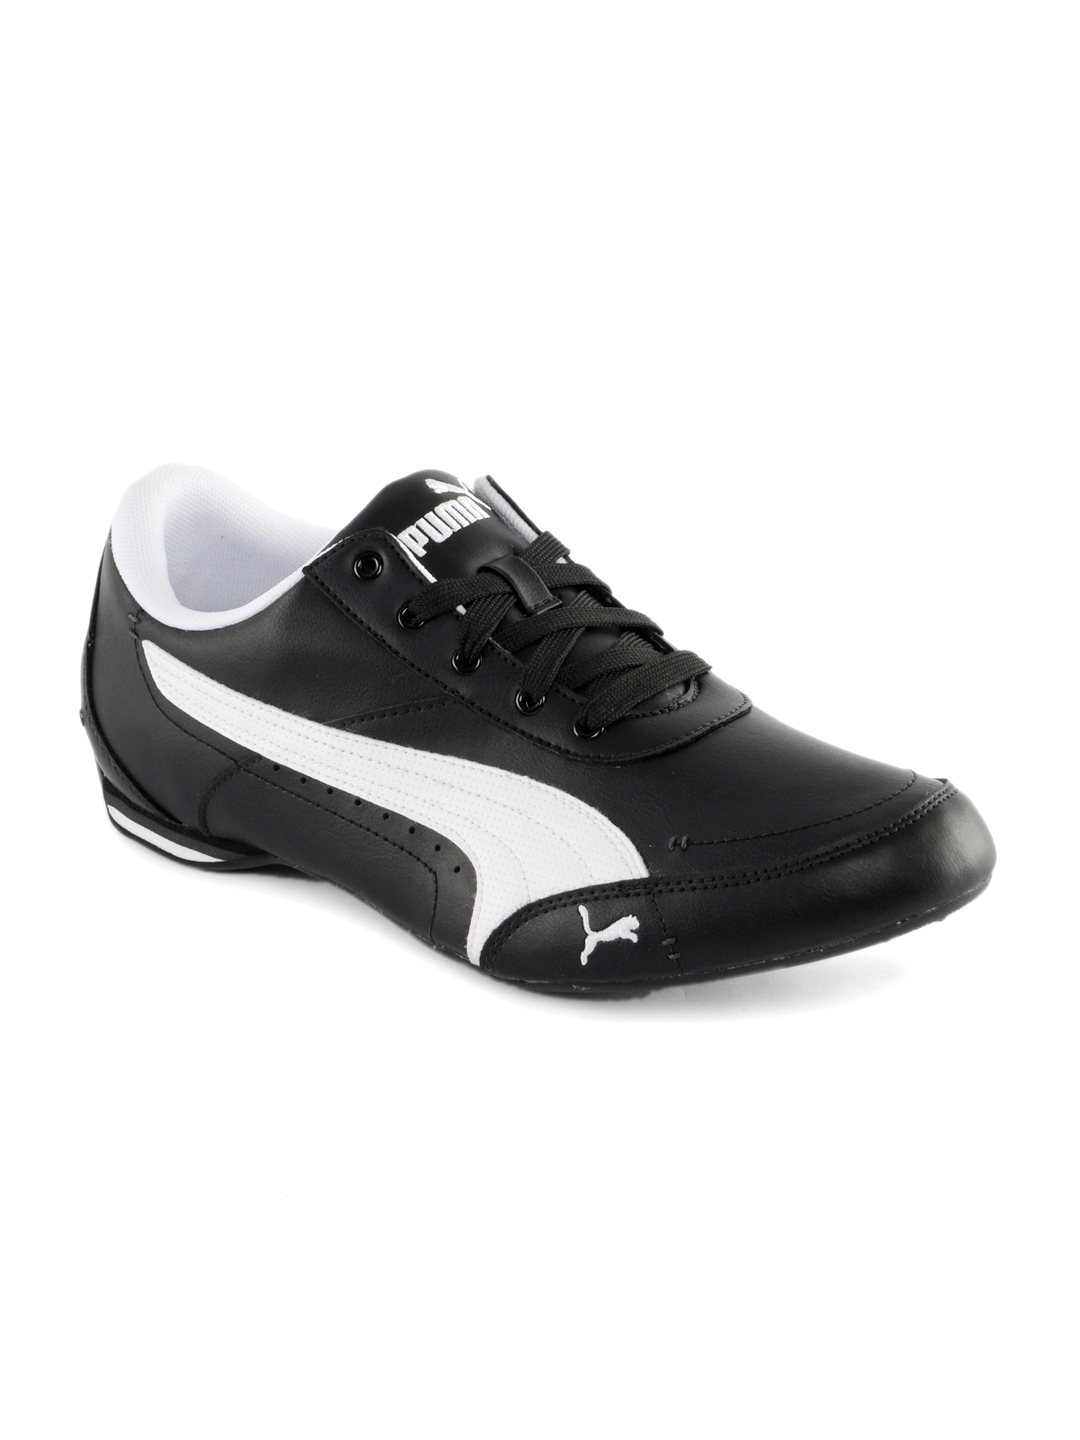 Puma Men Racer Black Shoes